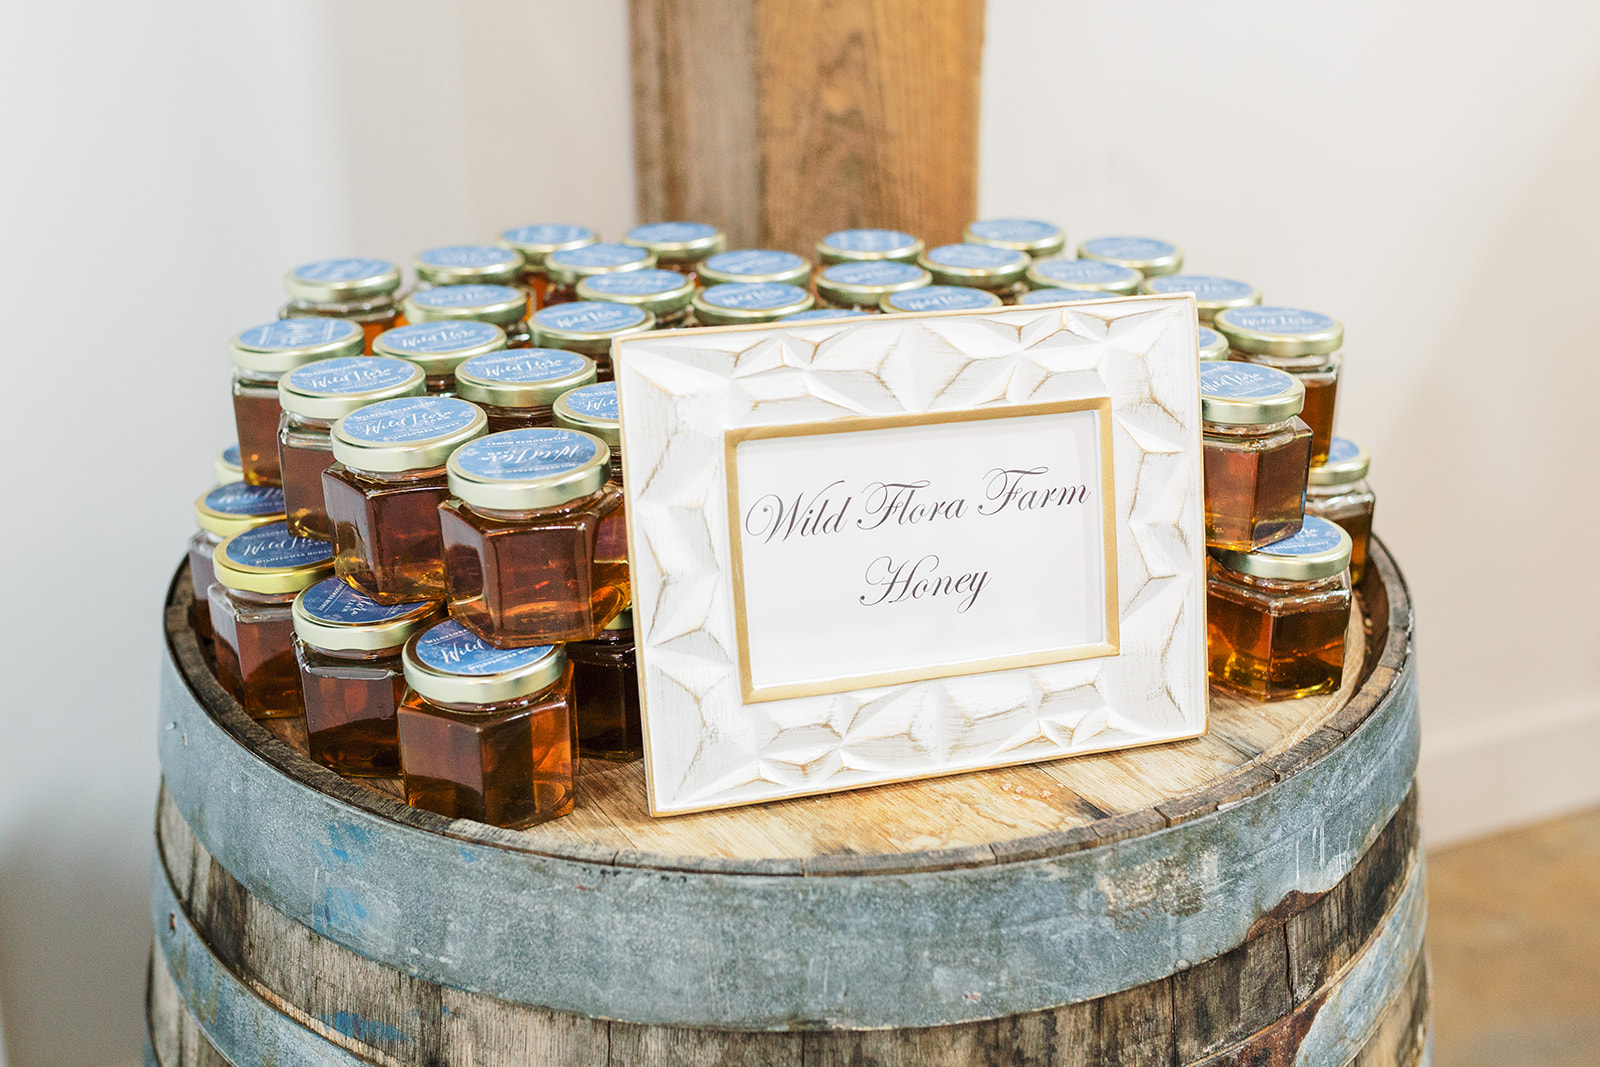 wild_flora_farm_honey_wedding_favors